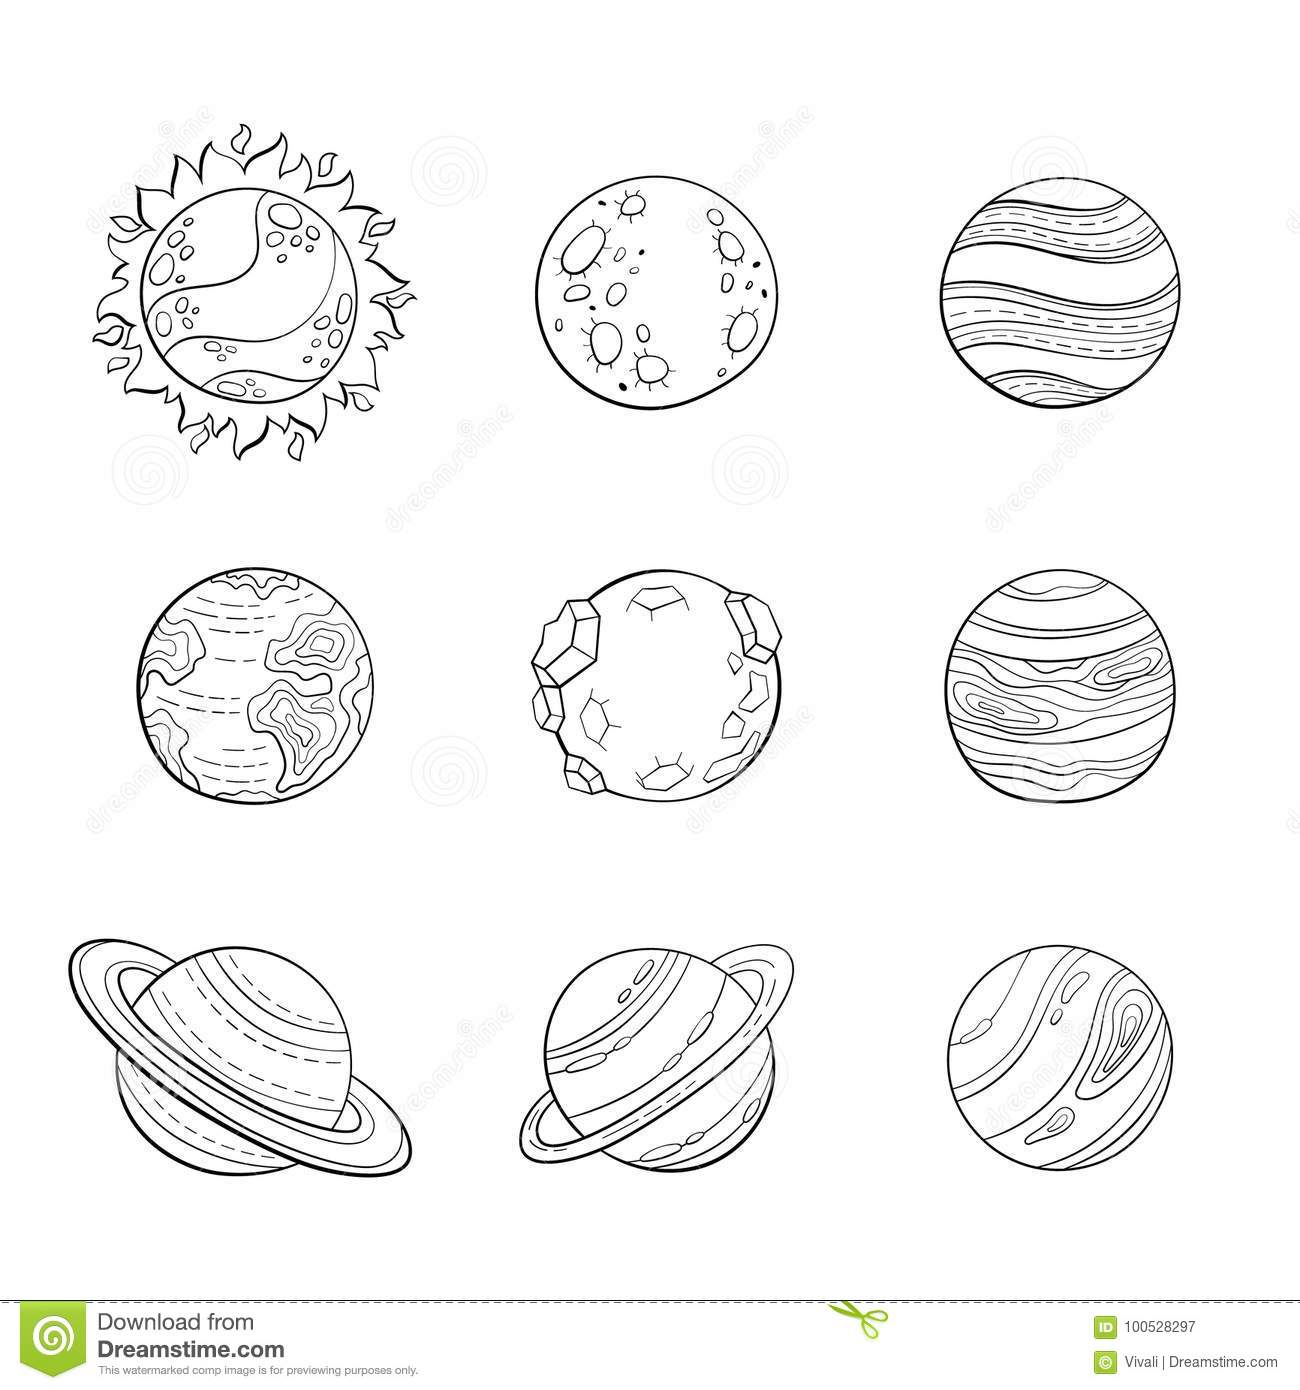 Vector Cartoon Planets Education Space Illustration For